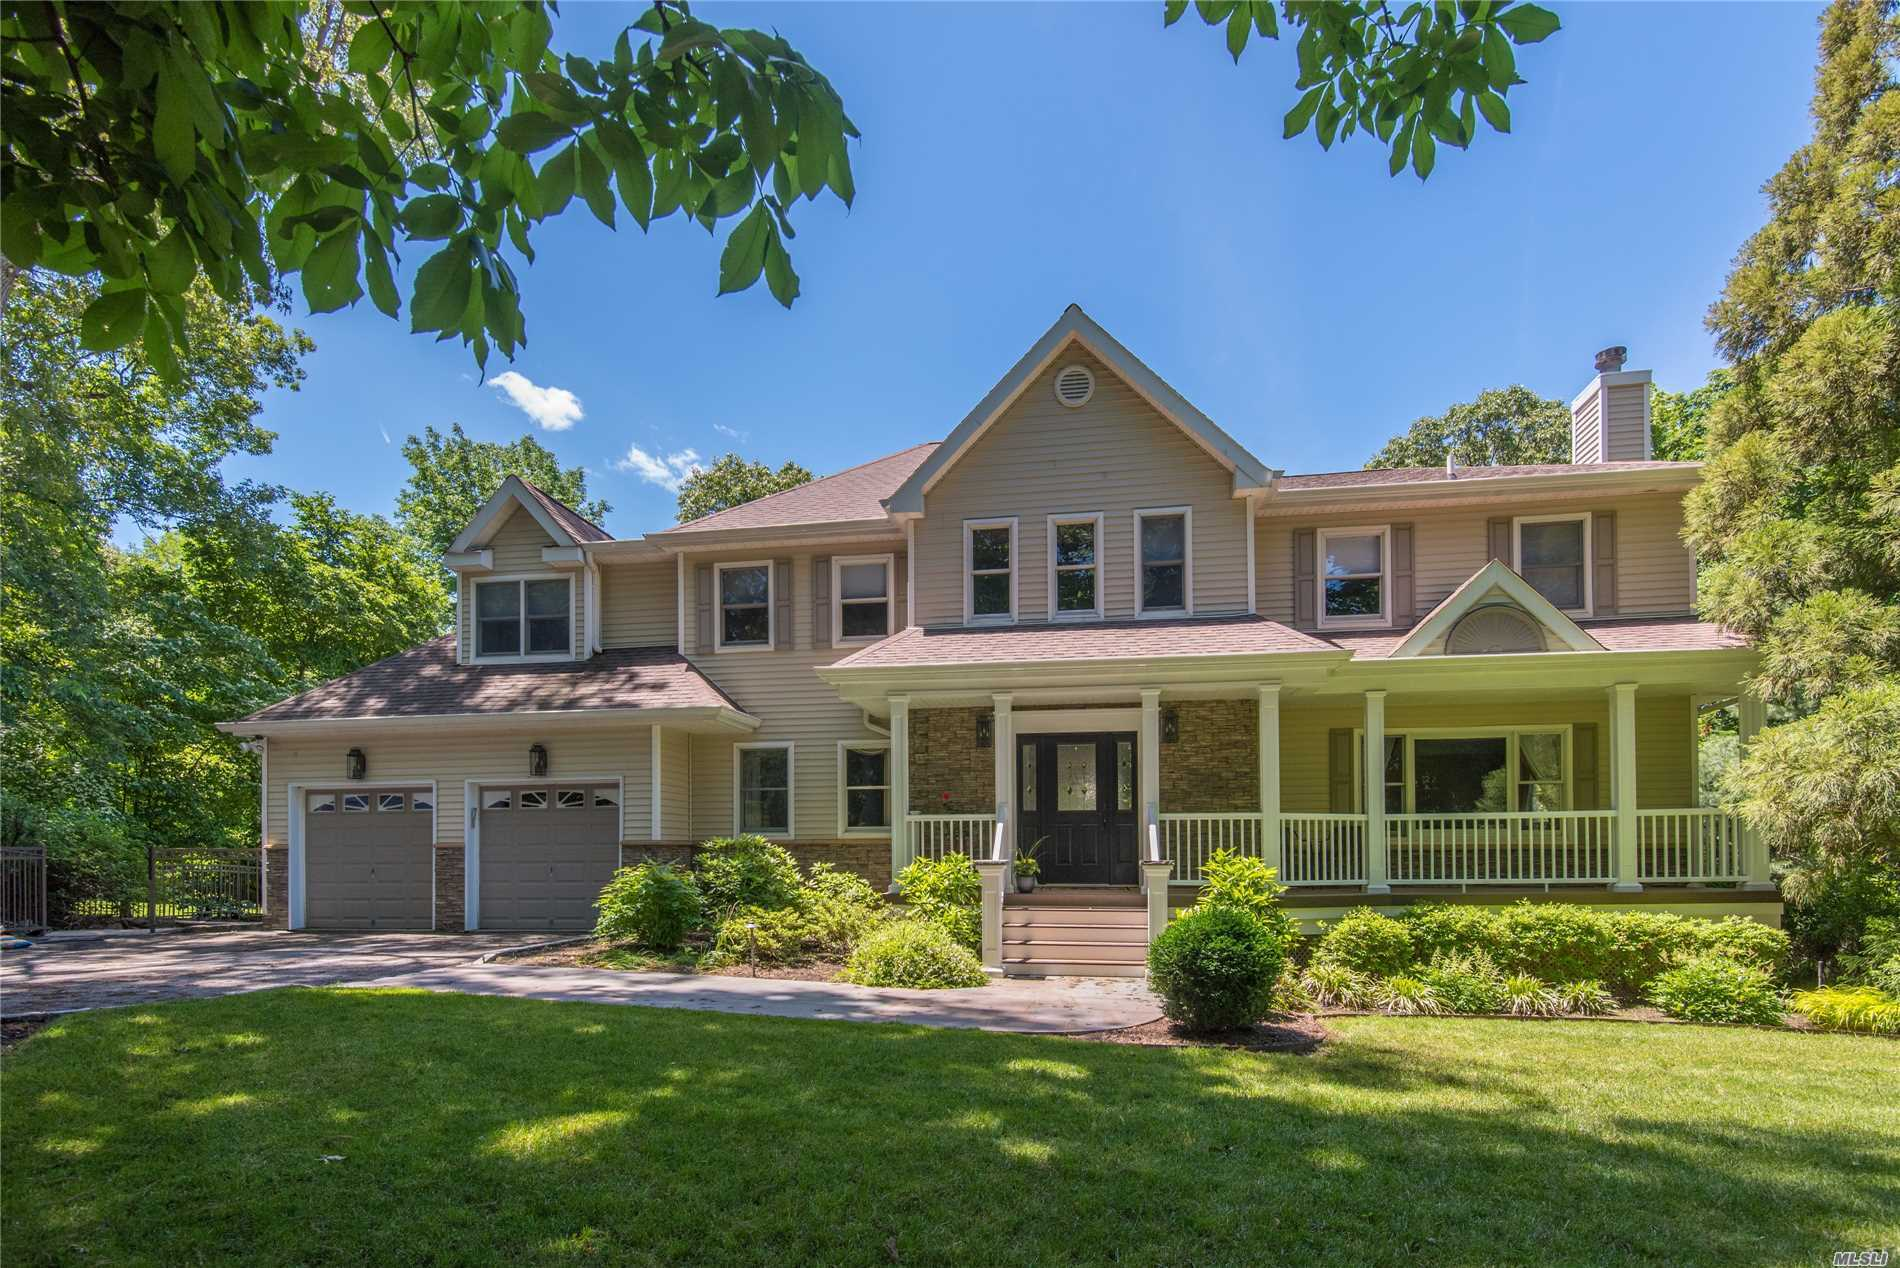 Move right in to this 2018 updated Colonial w/ front porch set back on treelined street. Luxurious master en-suite w/ dual closets & bath w/ radiant heat limestone floors & air jet tub. Two car garage & laundry/mudroom off eat-in kitchen w/ glass sliders that lead to Timbertech deck, pool, jacuzzi & patio. Finished lower level w/ built-in bar, wine cellar, den, stereo system & walk-out entrance. Perfect for everyday enjoyment & only minutes to Huntington Village & beaches. Auto Generac Generator